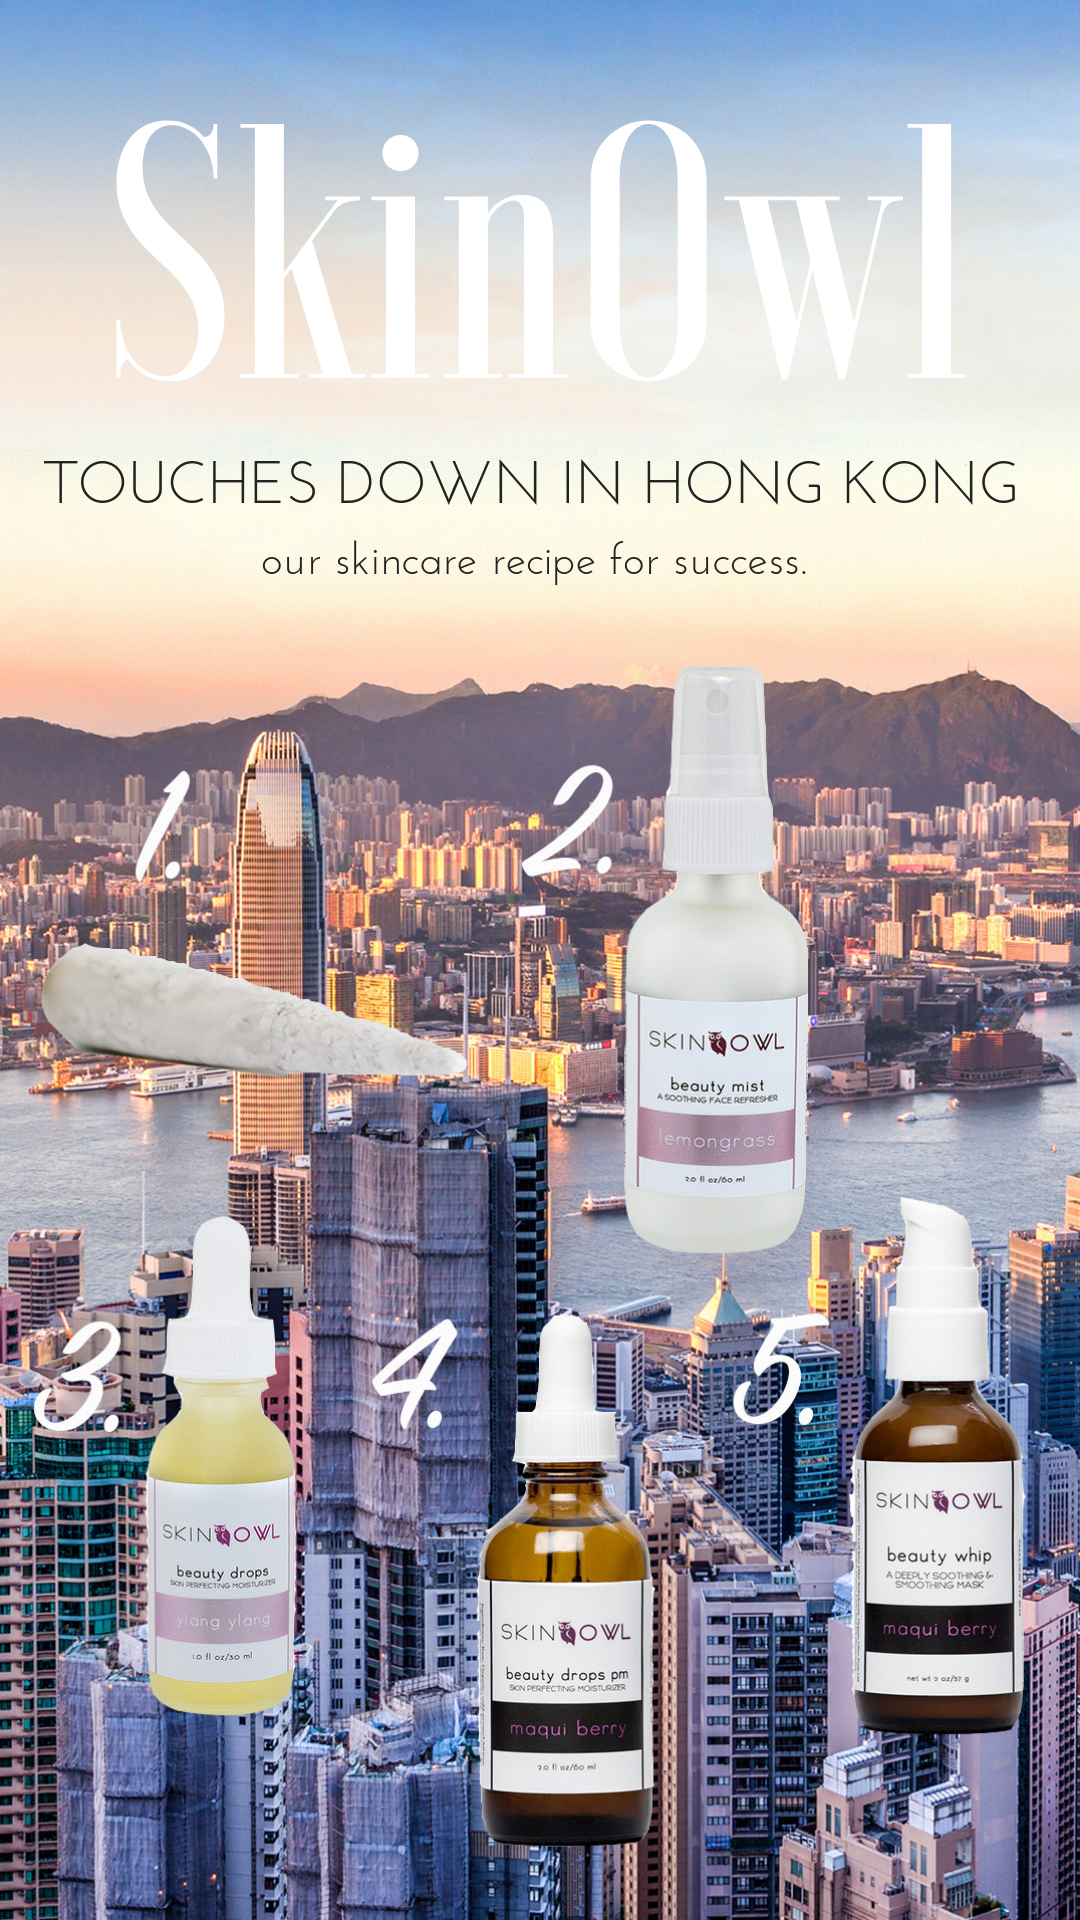 SkinOwl Touches Down in Hong Kong